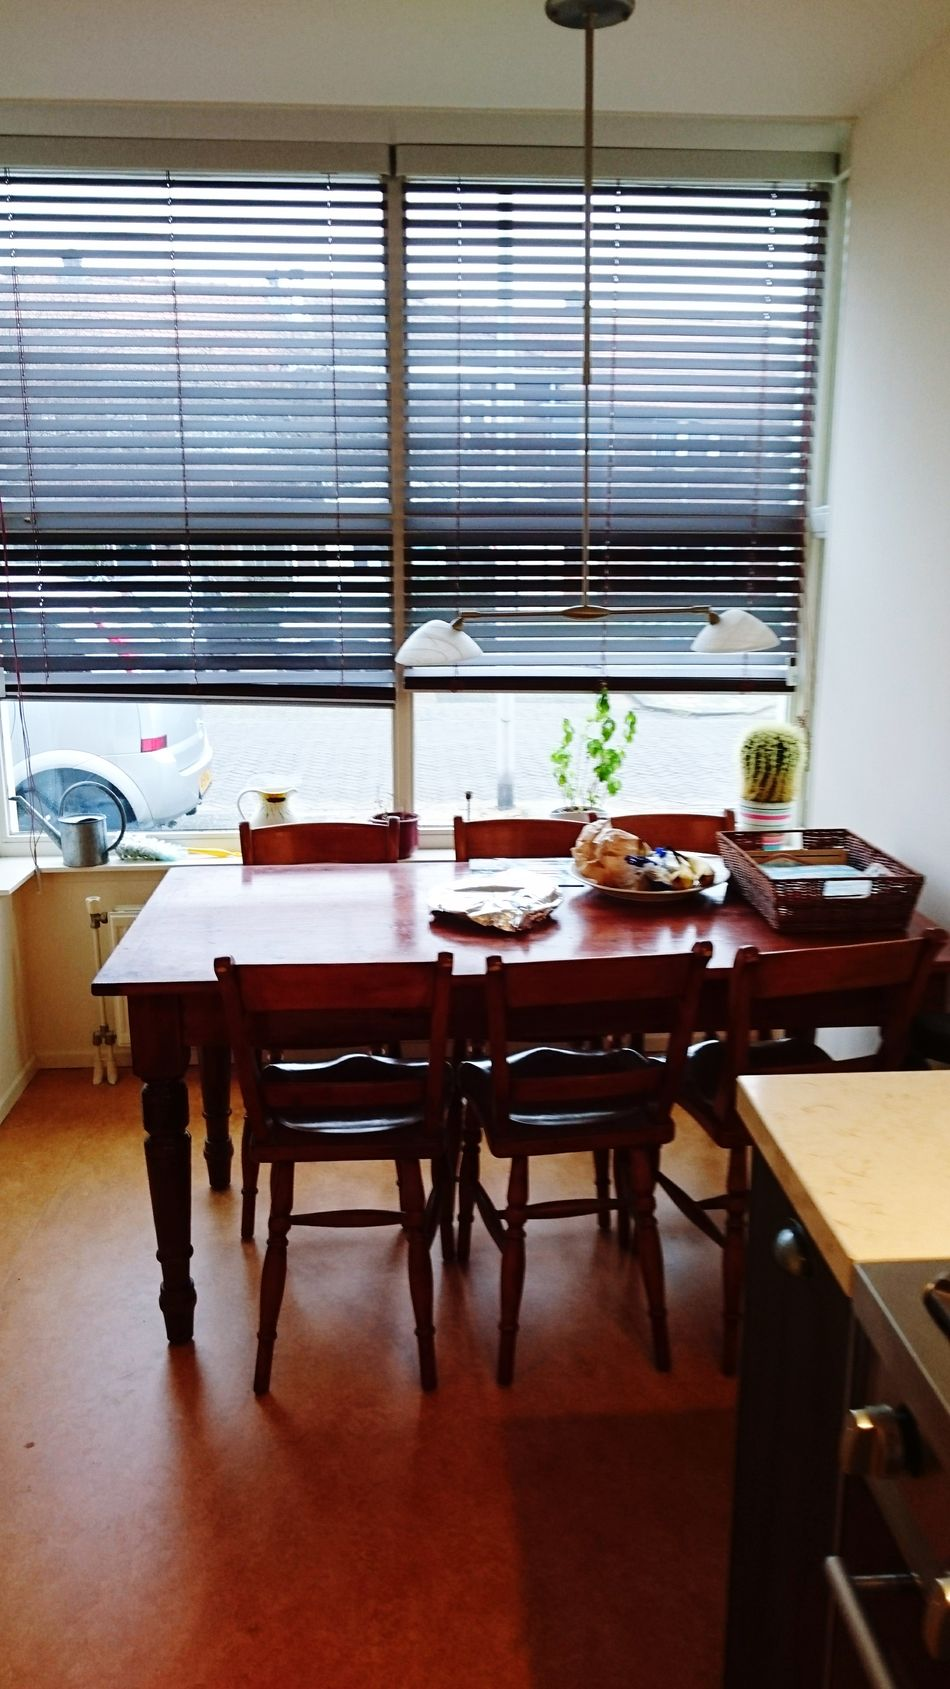 (c) 2017 Shangita Bose All Rights Reserved Indoors  Window Architecture No People Day Dining Room Table